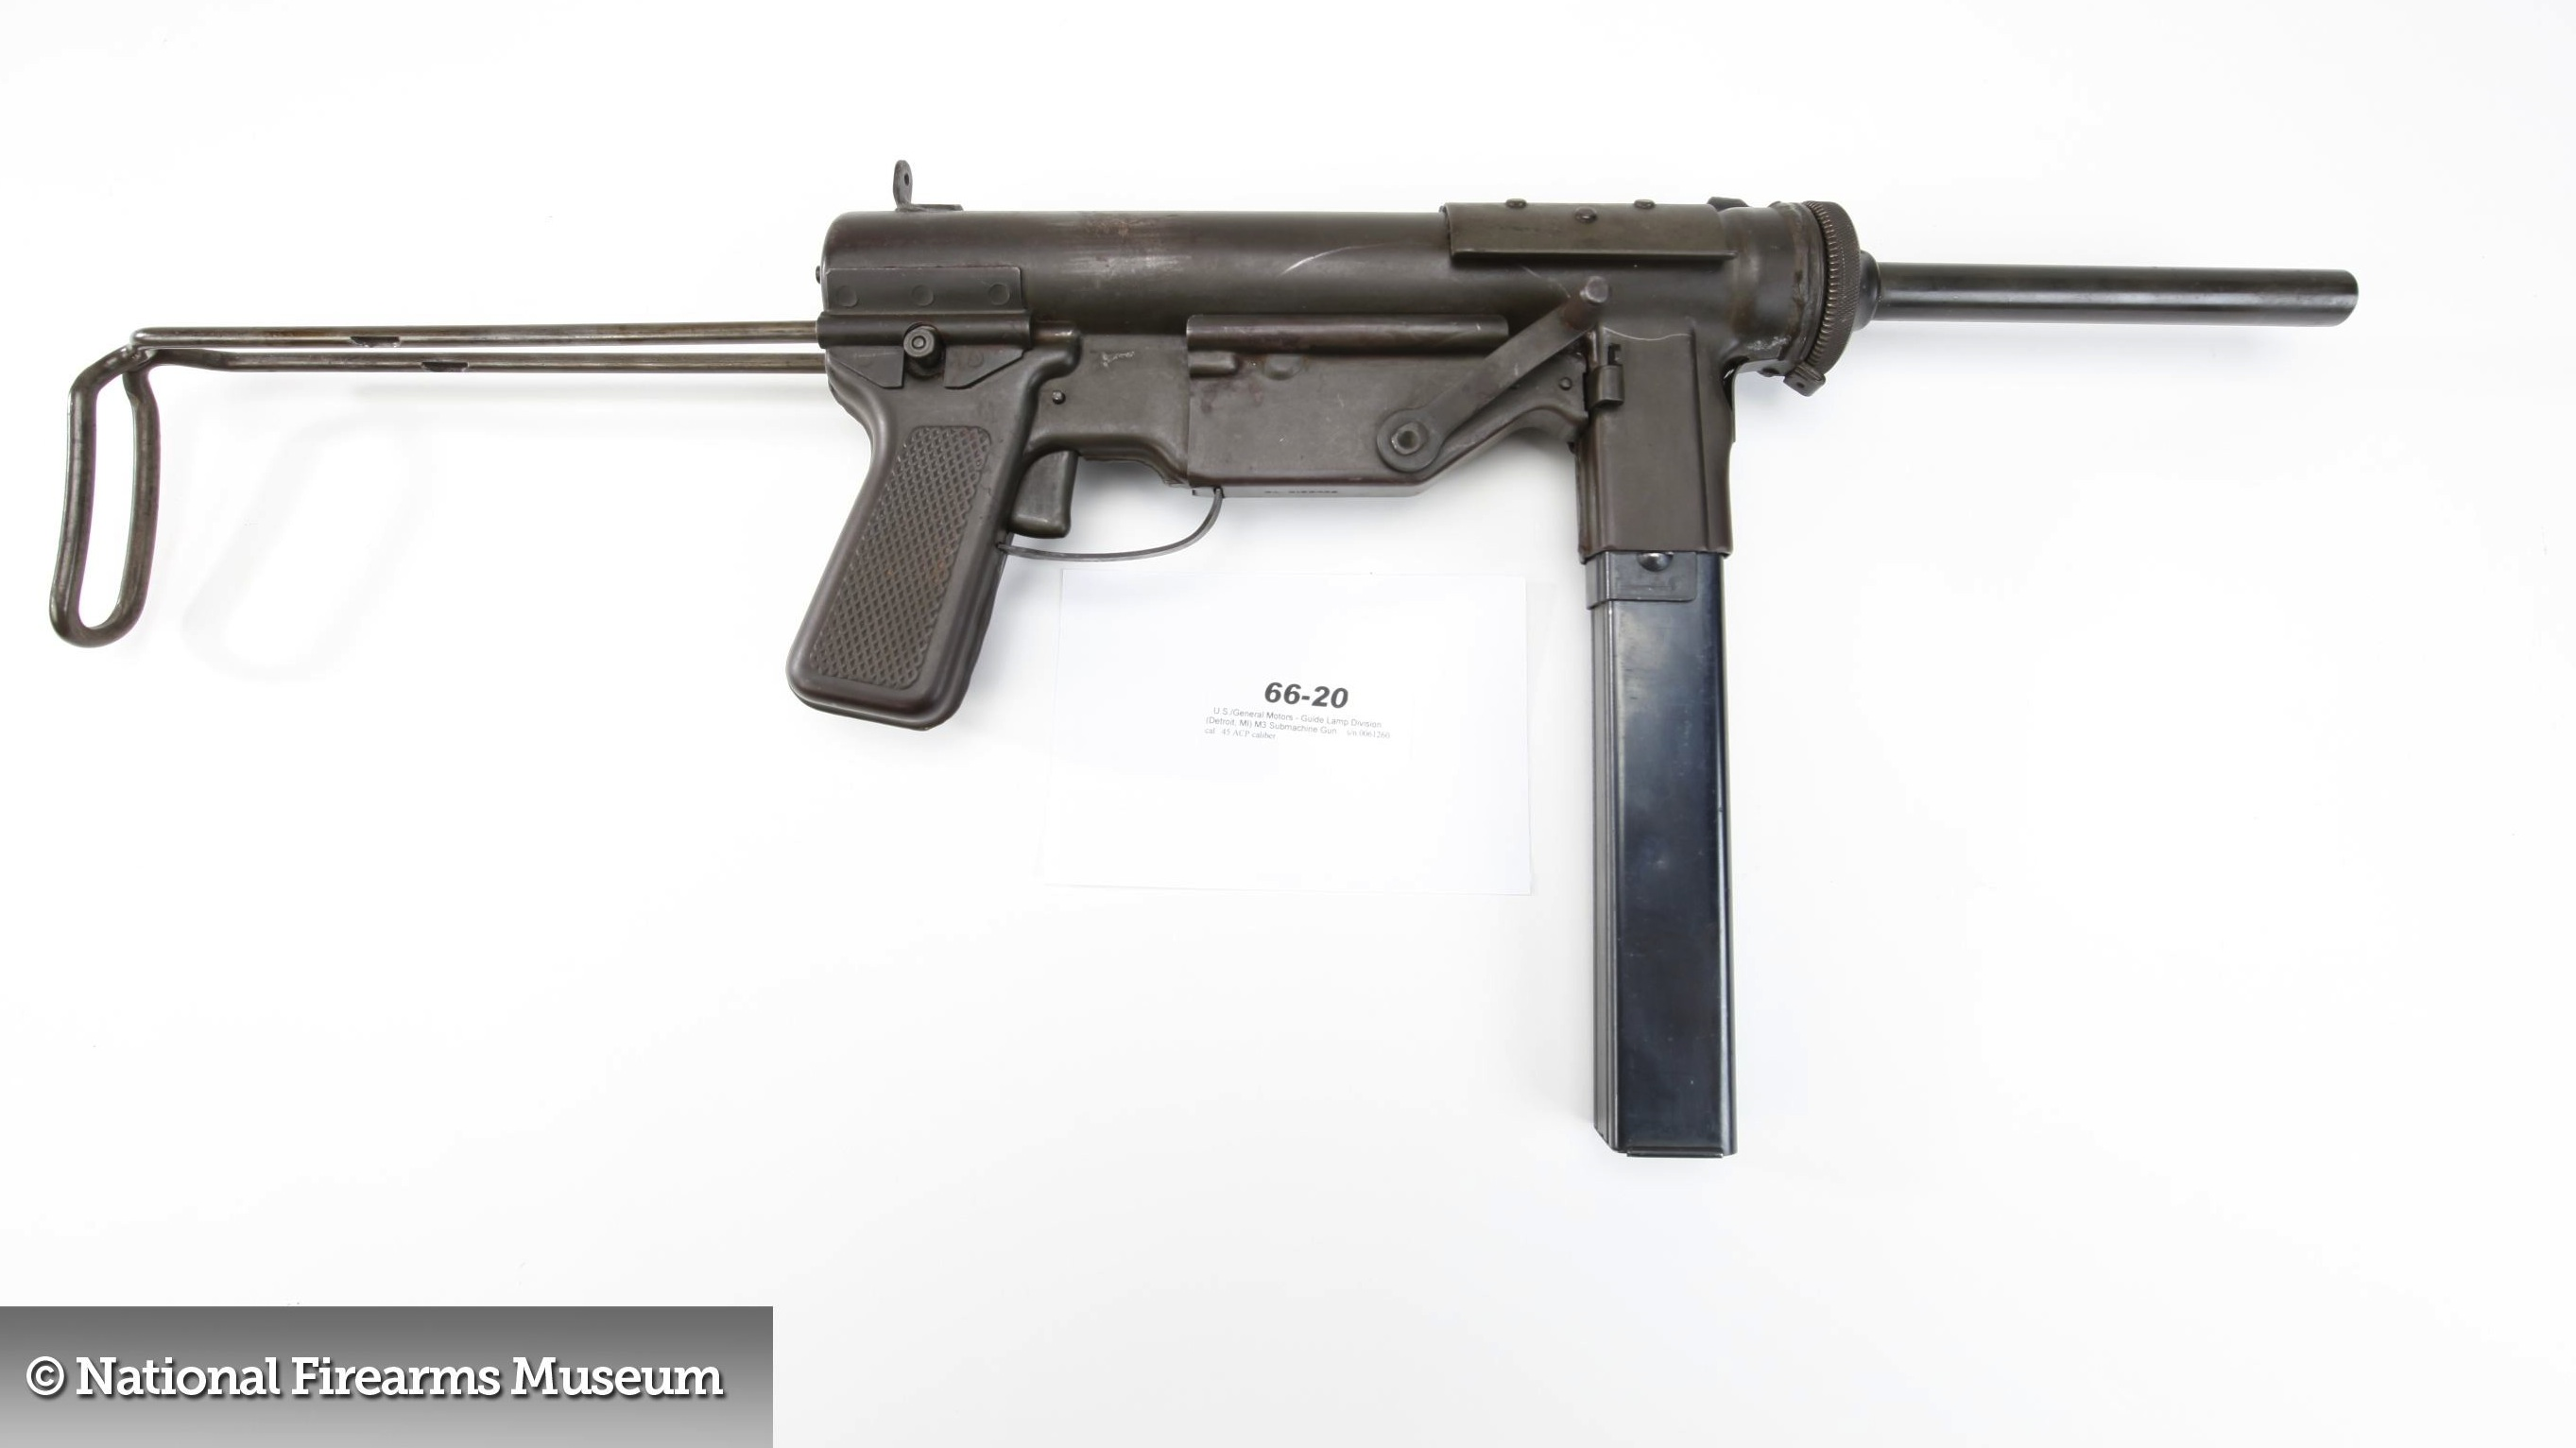 The M3 Grease Gun. Photo courtesy of the NRA National Firearms Museum. Go there. Really.